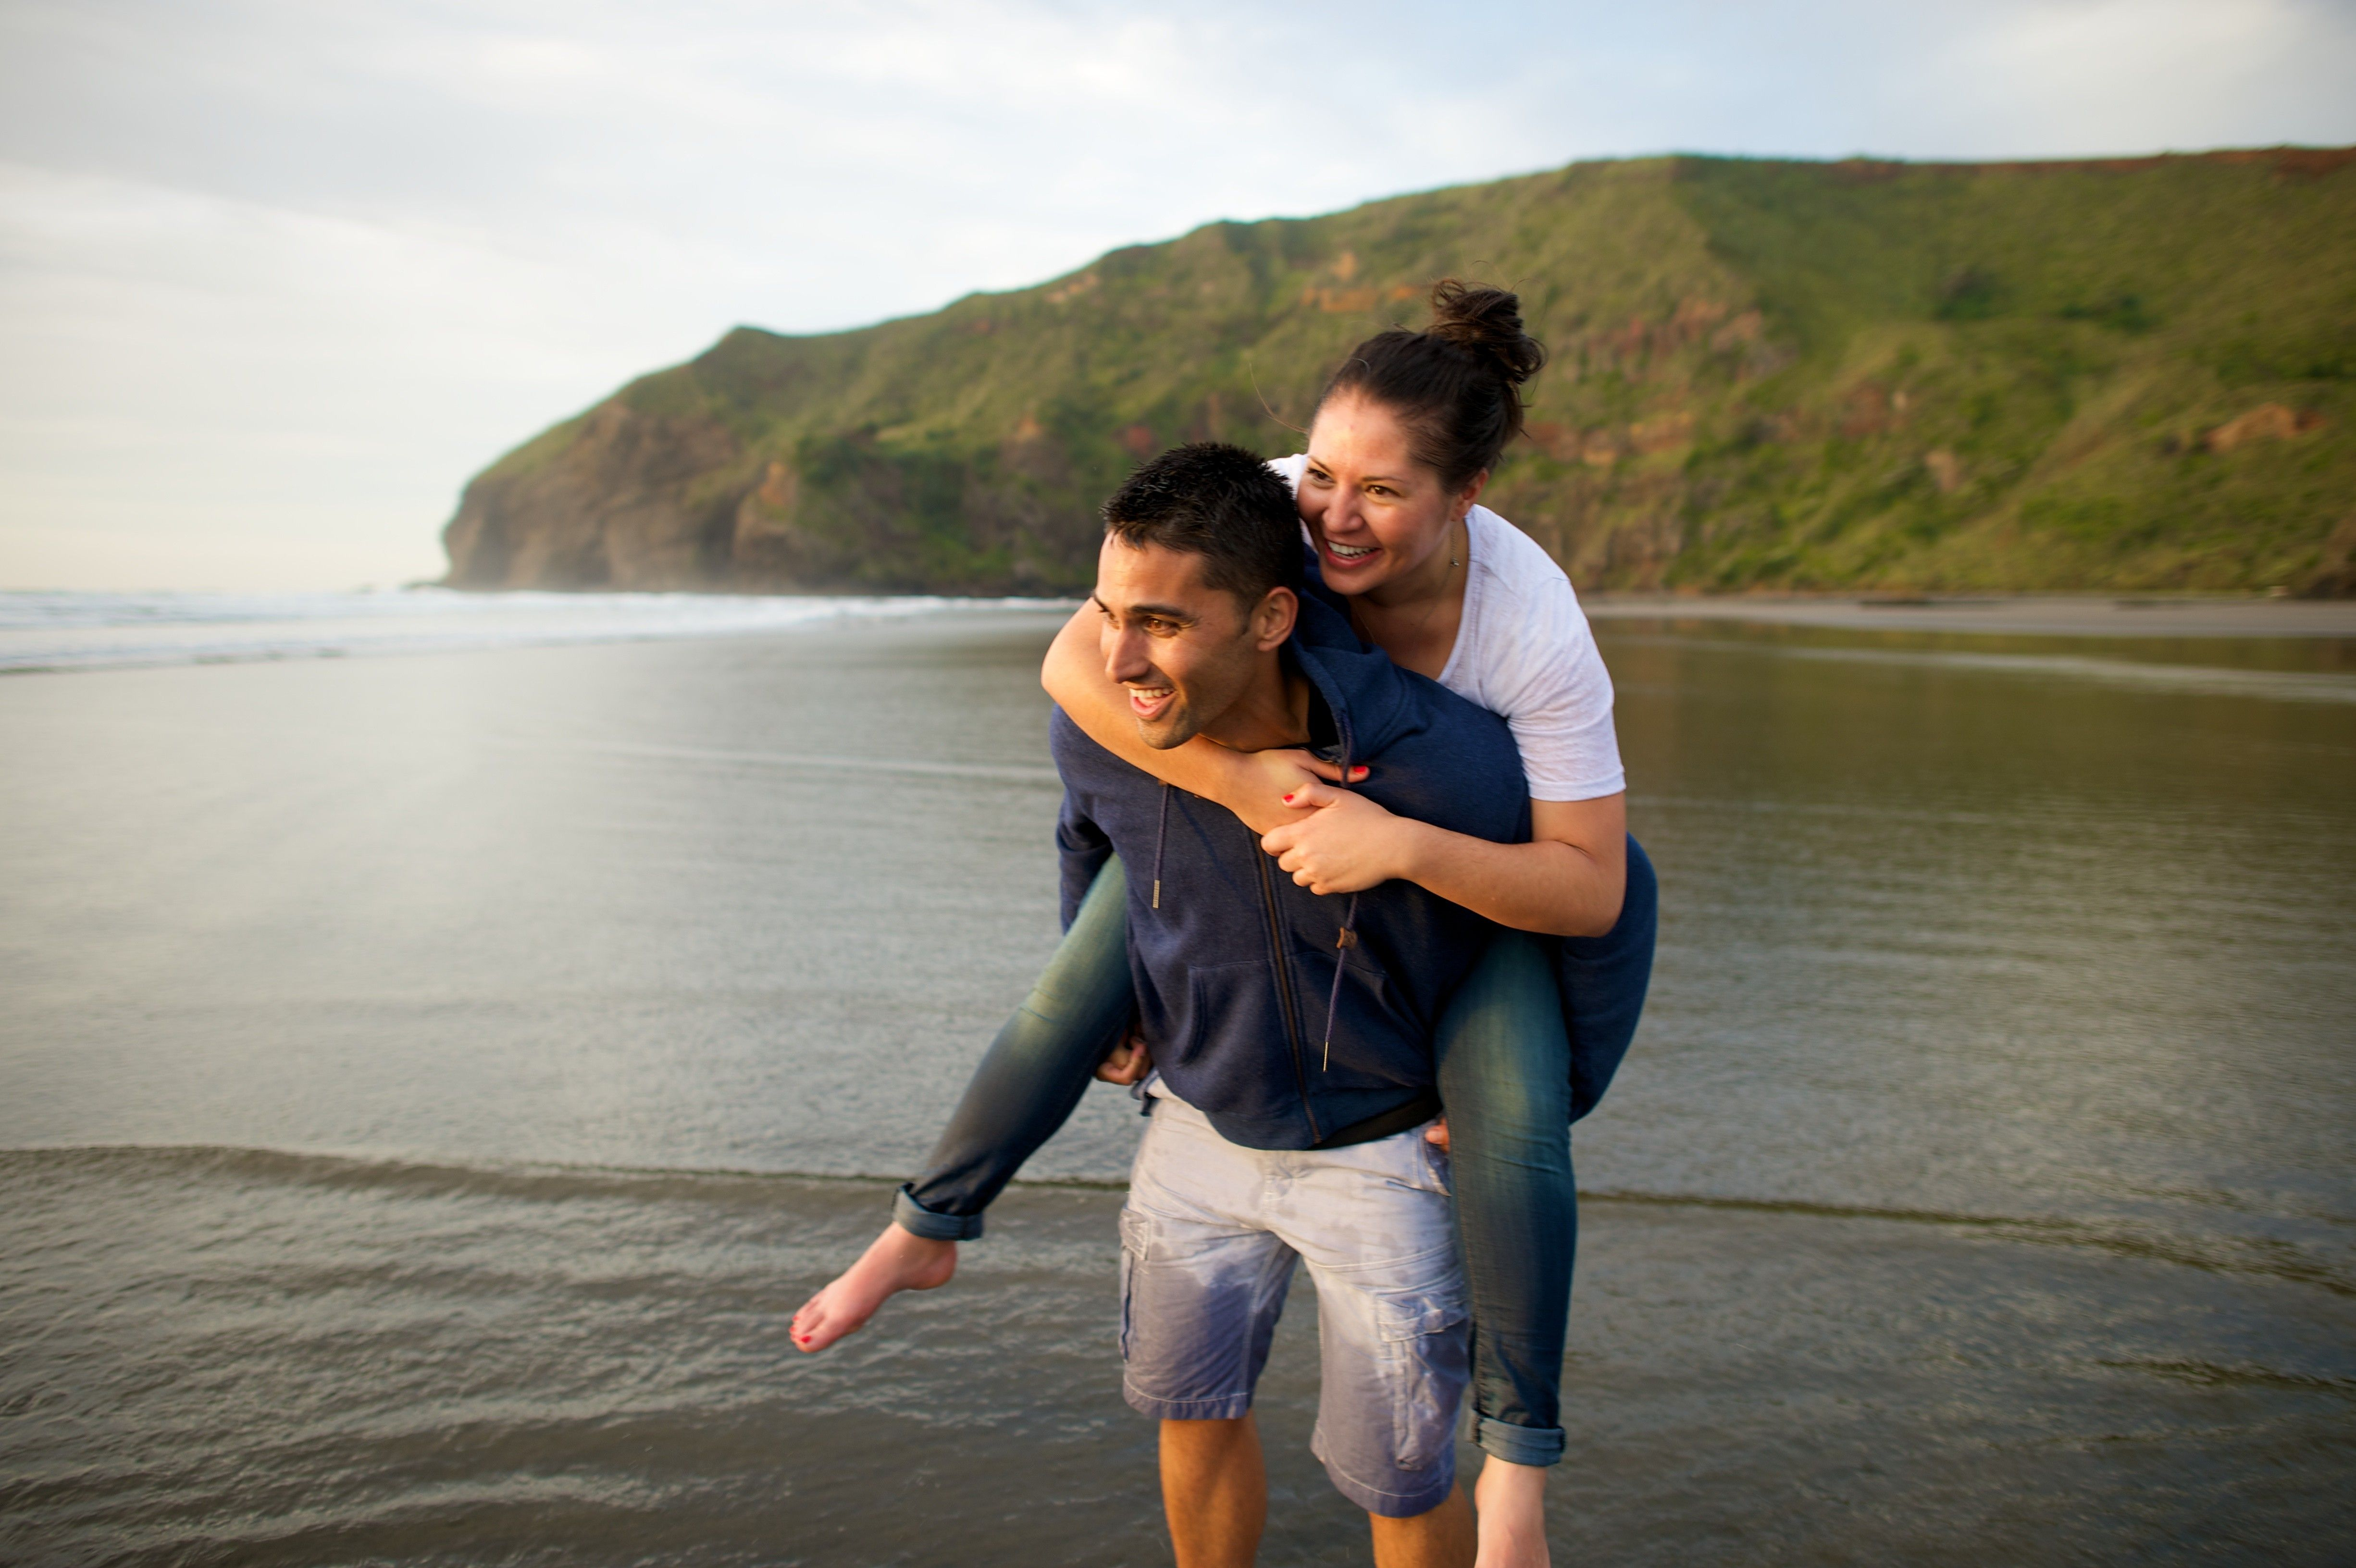 A young man carrying a young woman on his back at a beach in New Zealand.